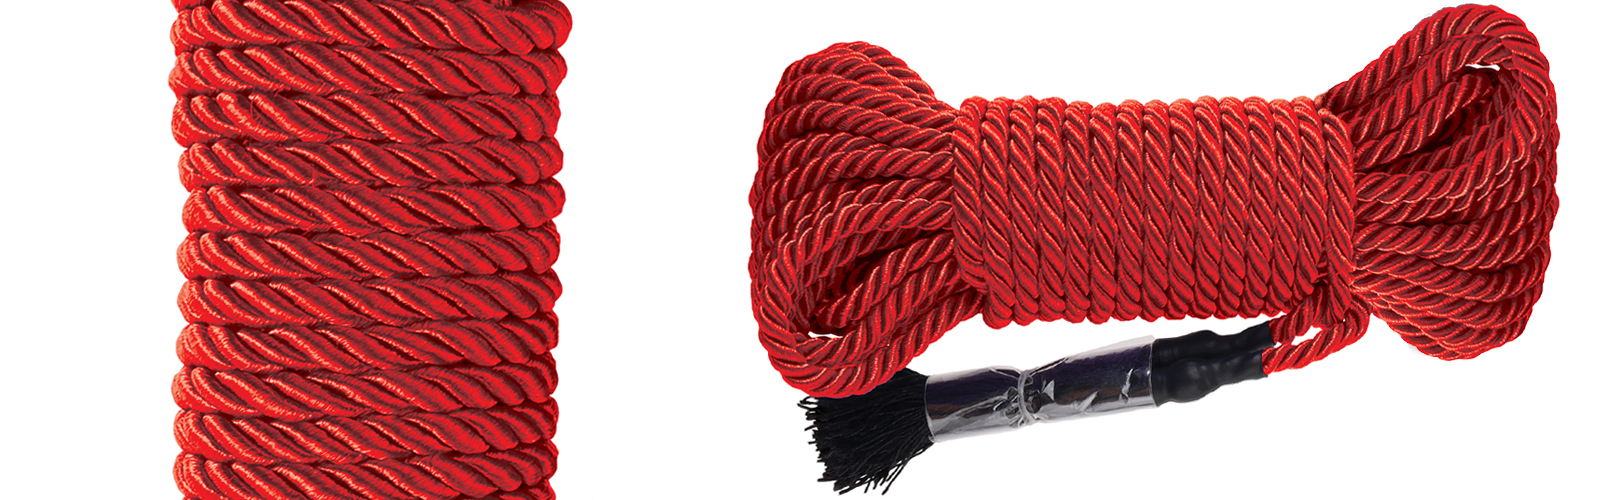 Pipedream Deluxe Soft & Silky Rope